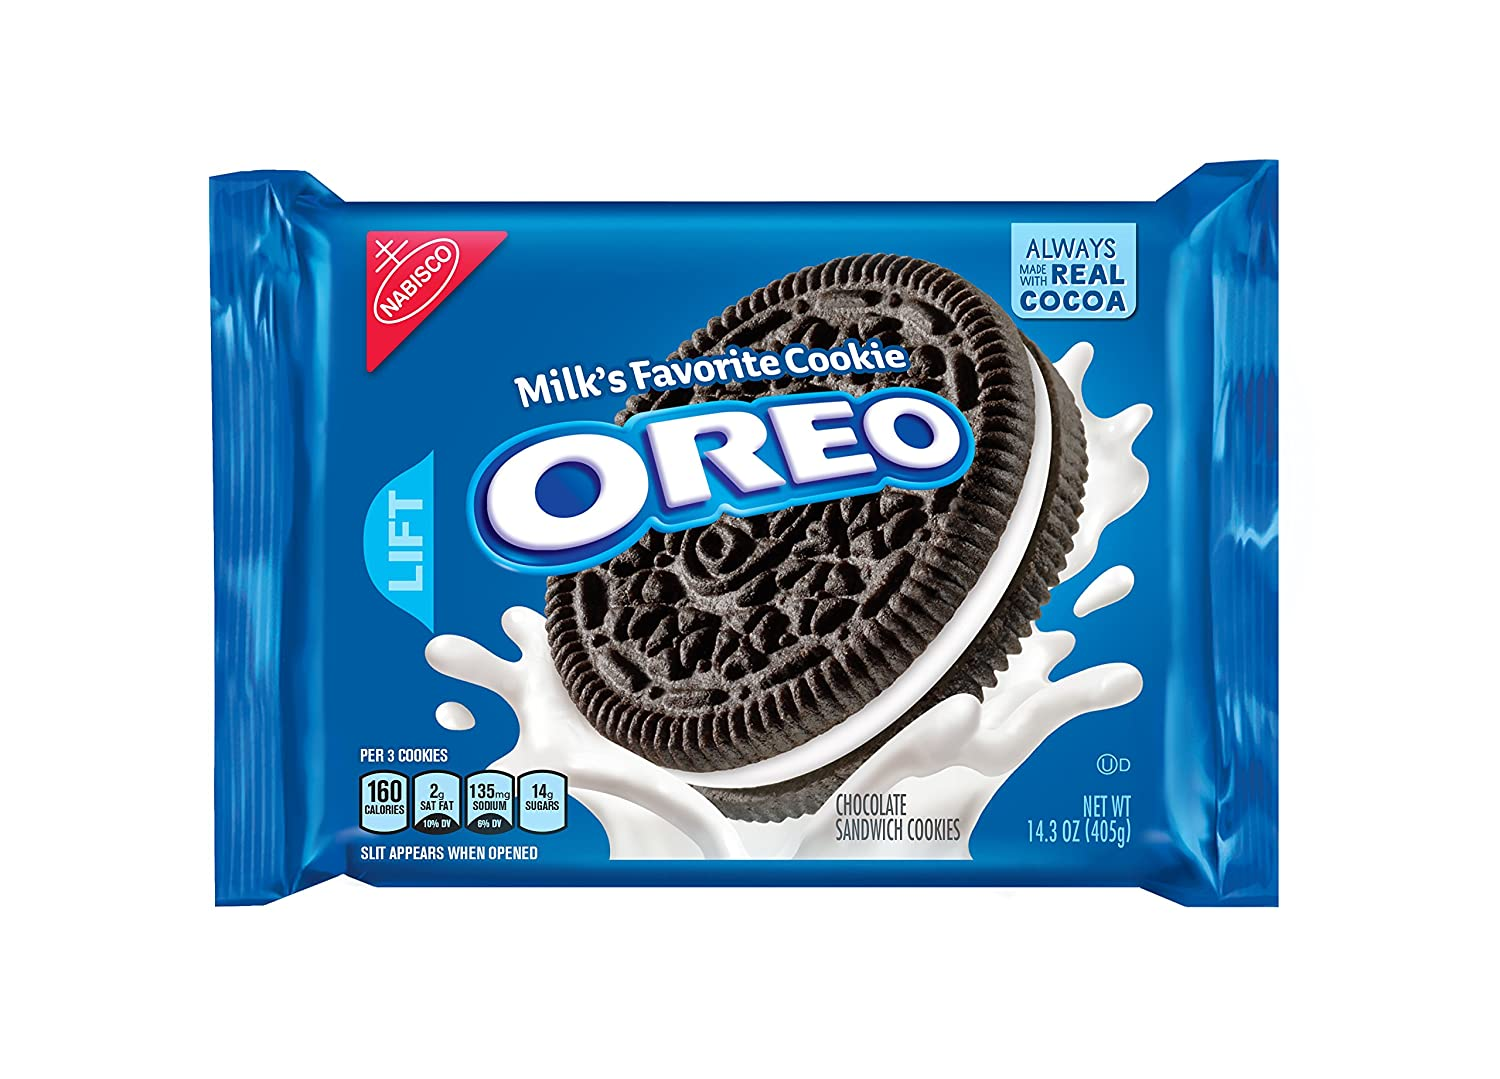 Amazon.com: Oreo Chocolate Sandwich Cookies, 14.3 Ounce